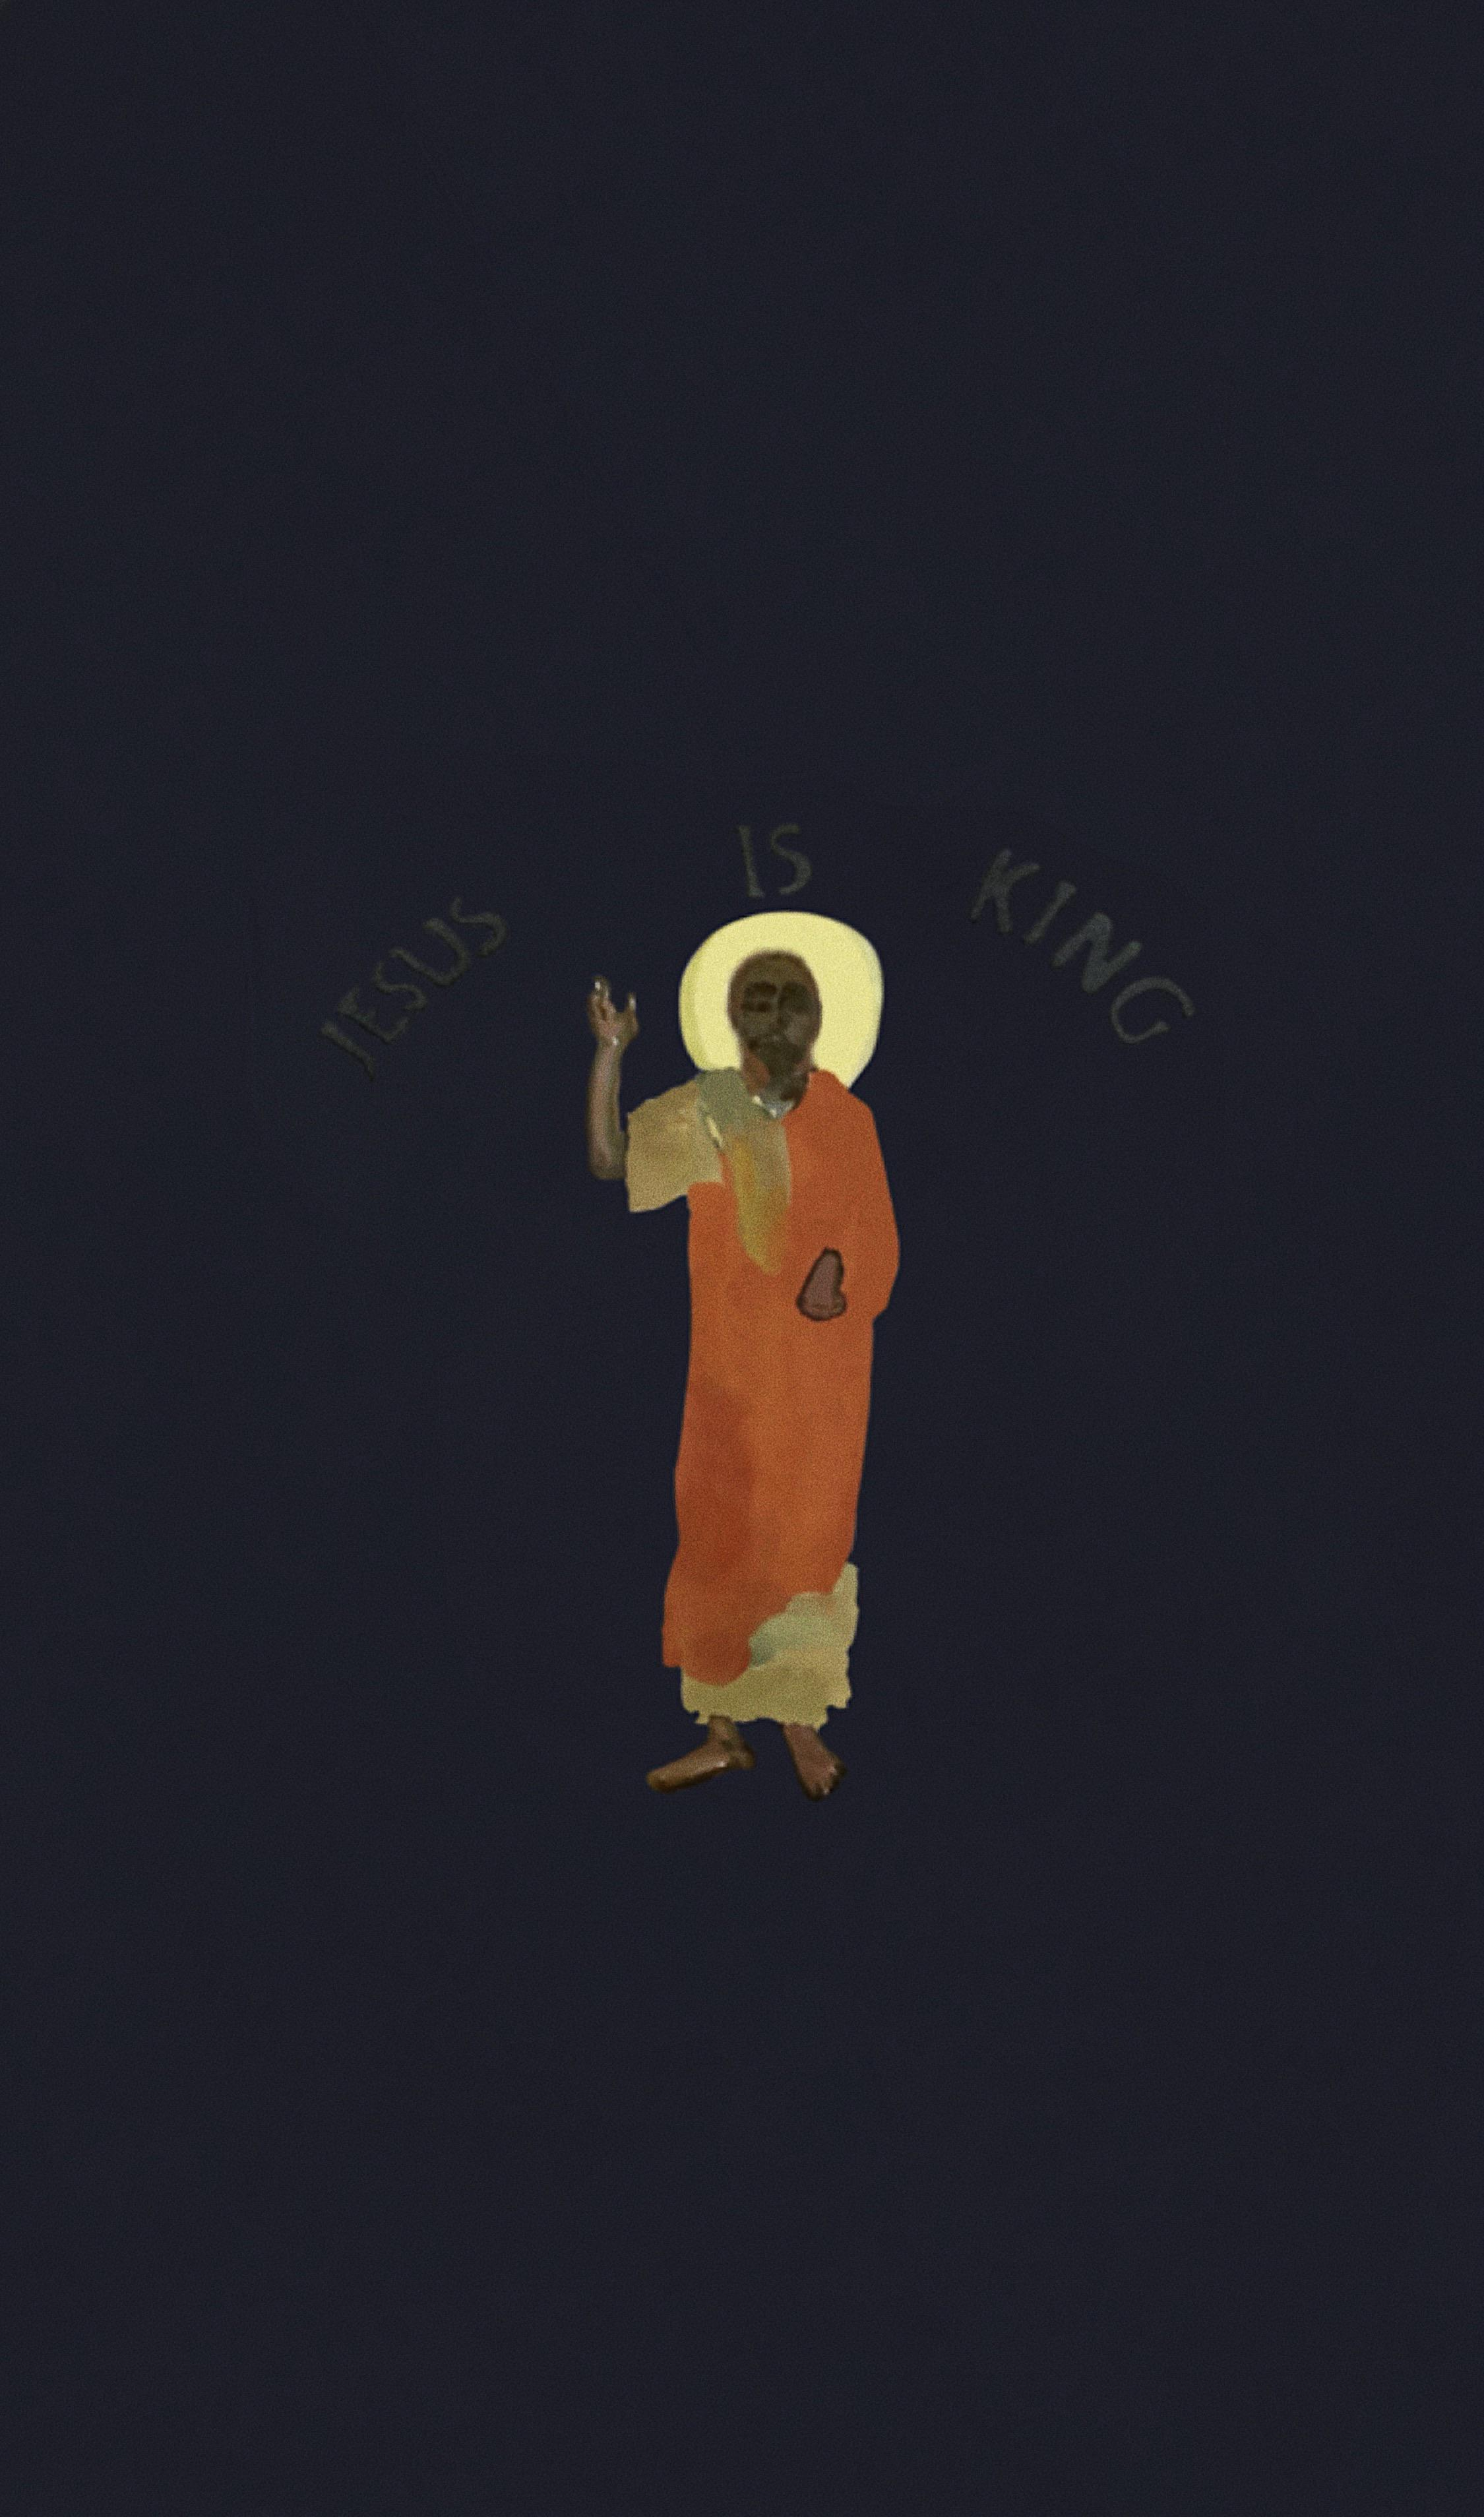 Jesus Is King Wallpaper Posted By Ryan Simpson